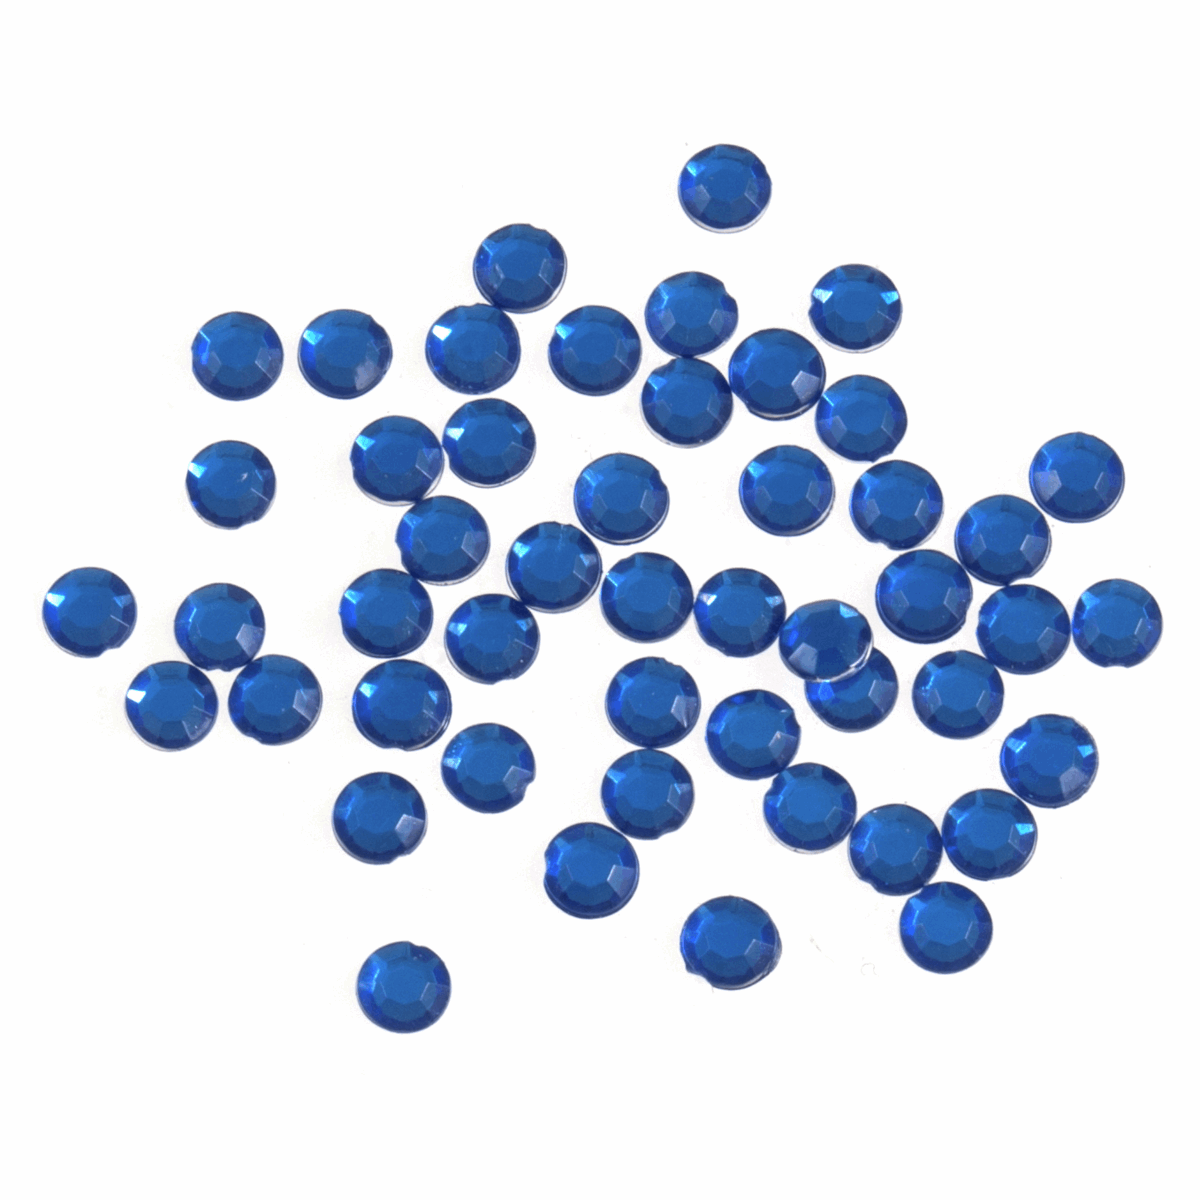 Picture of Acrylic Stones: Glue-On: Round: Medium-5mm: Royal